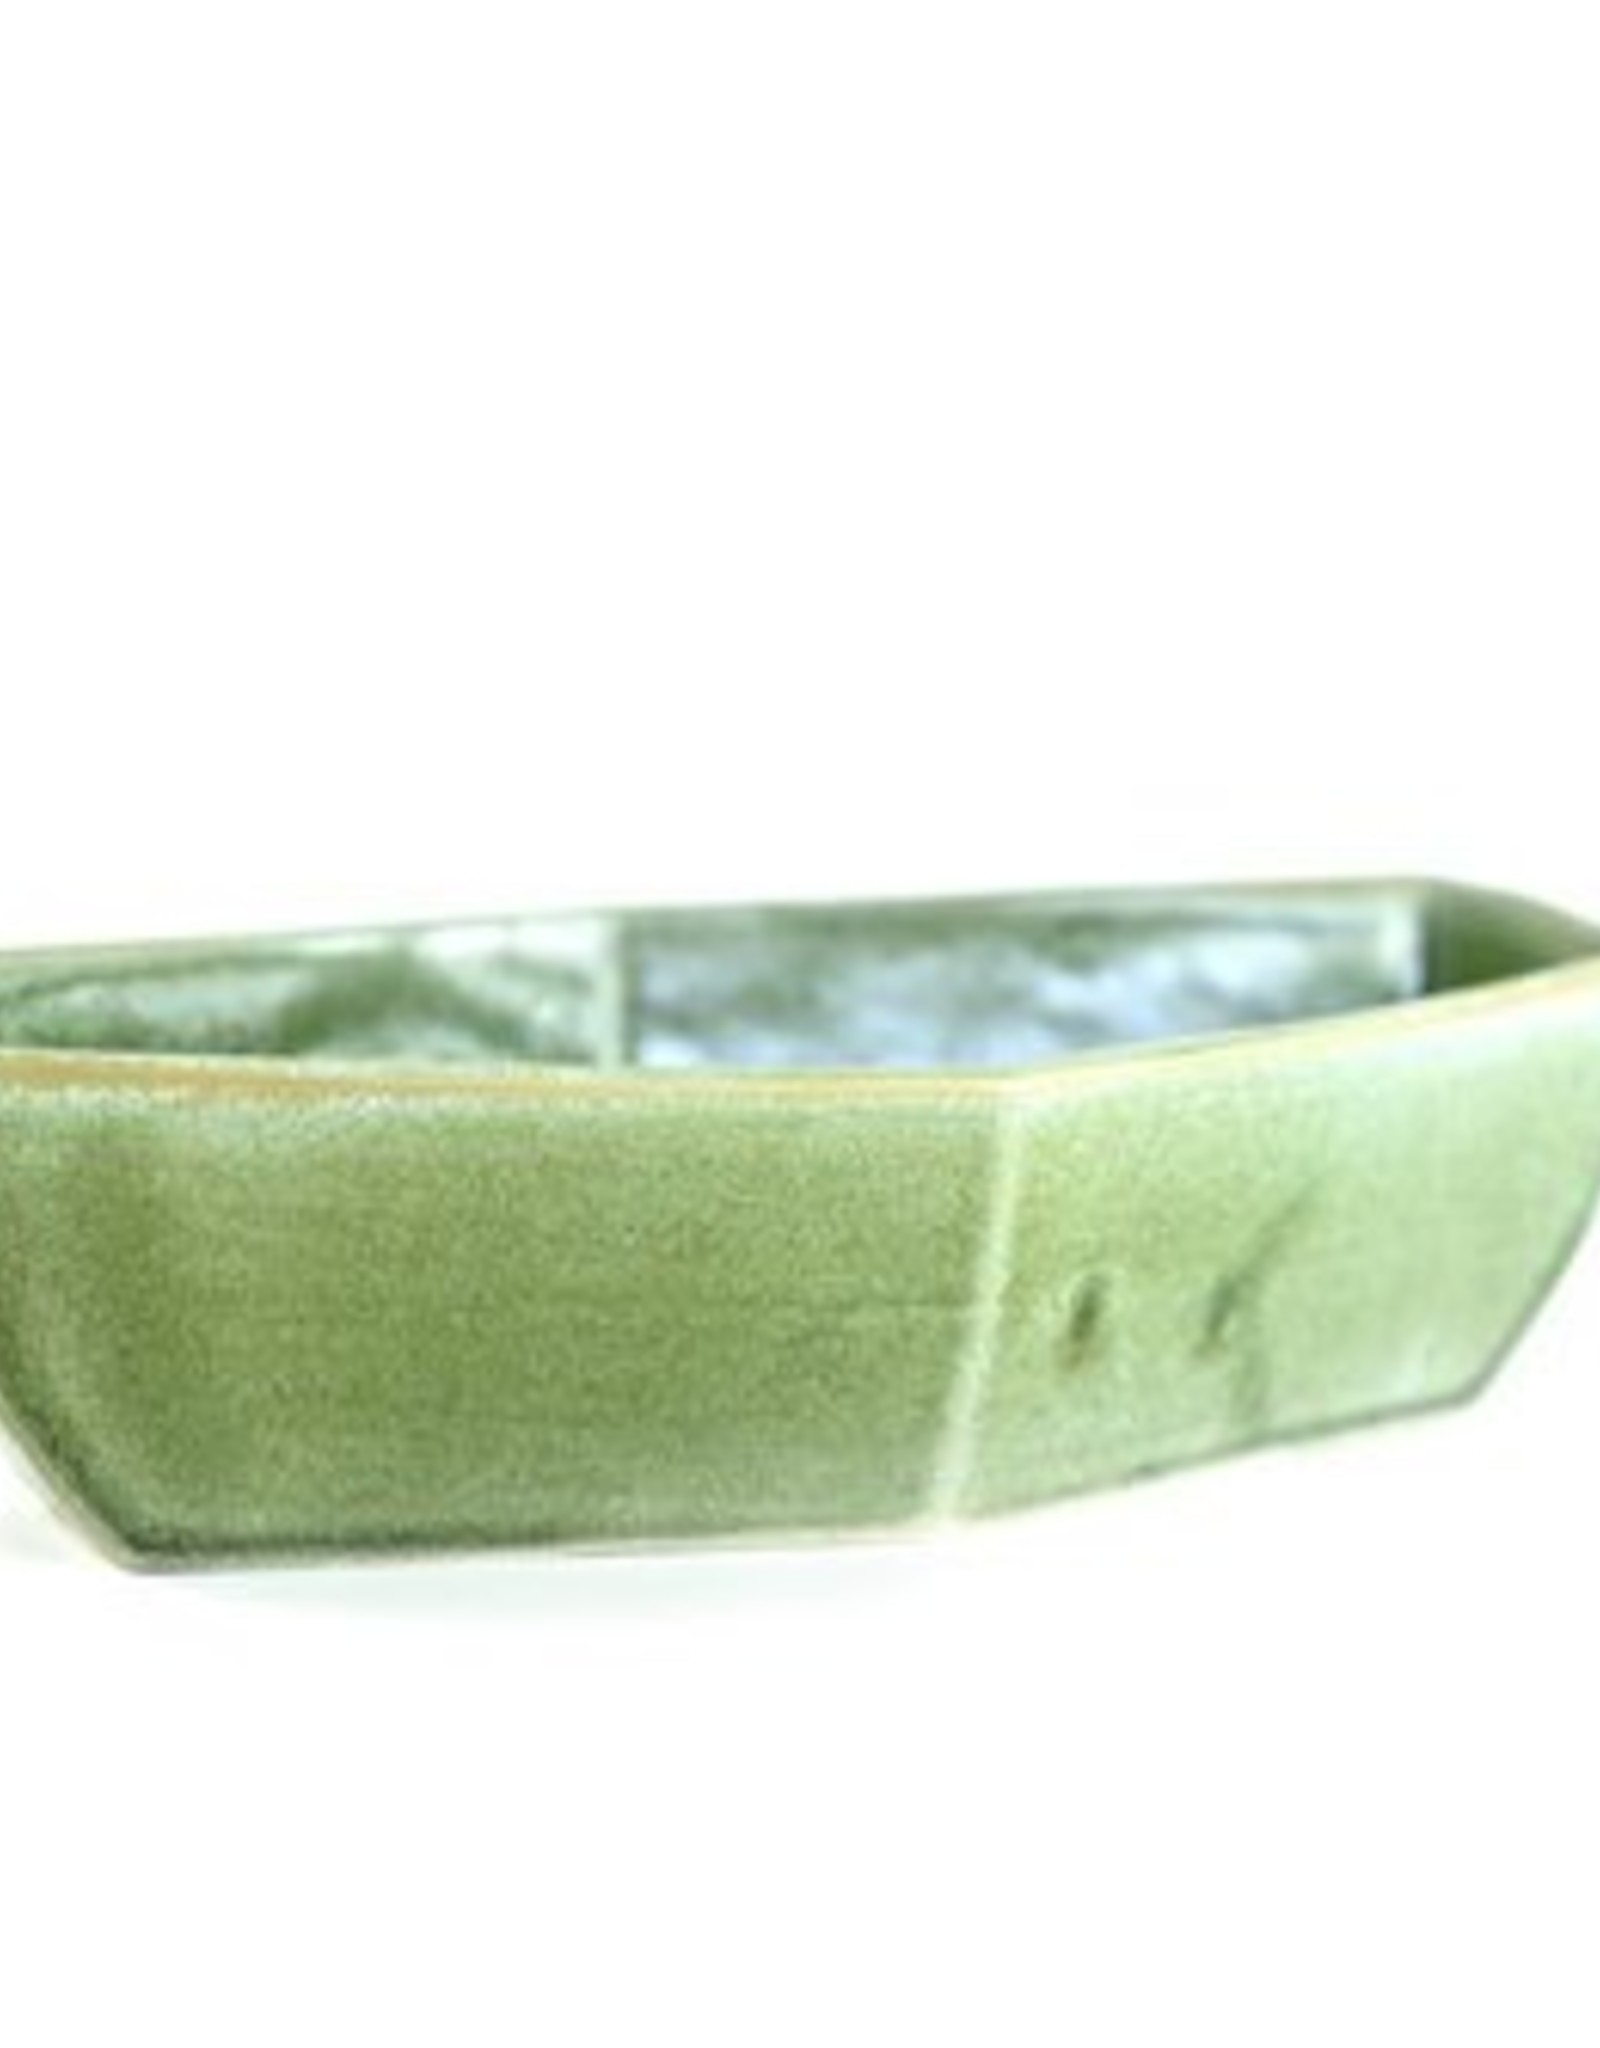 Lauren HB Hex Dish Small